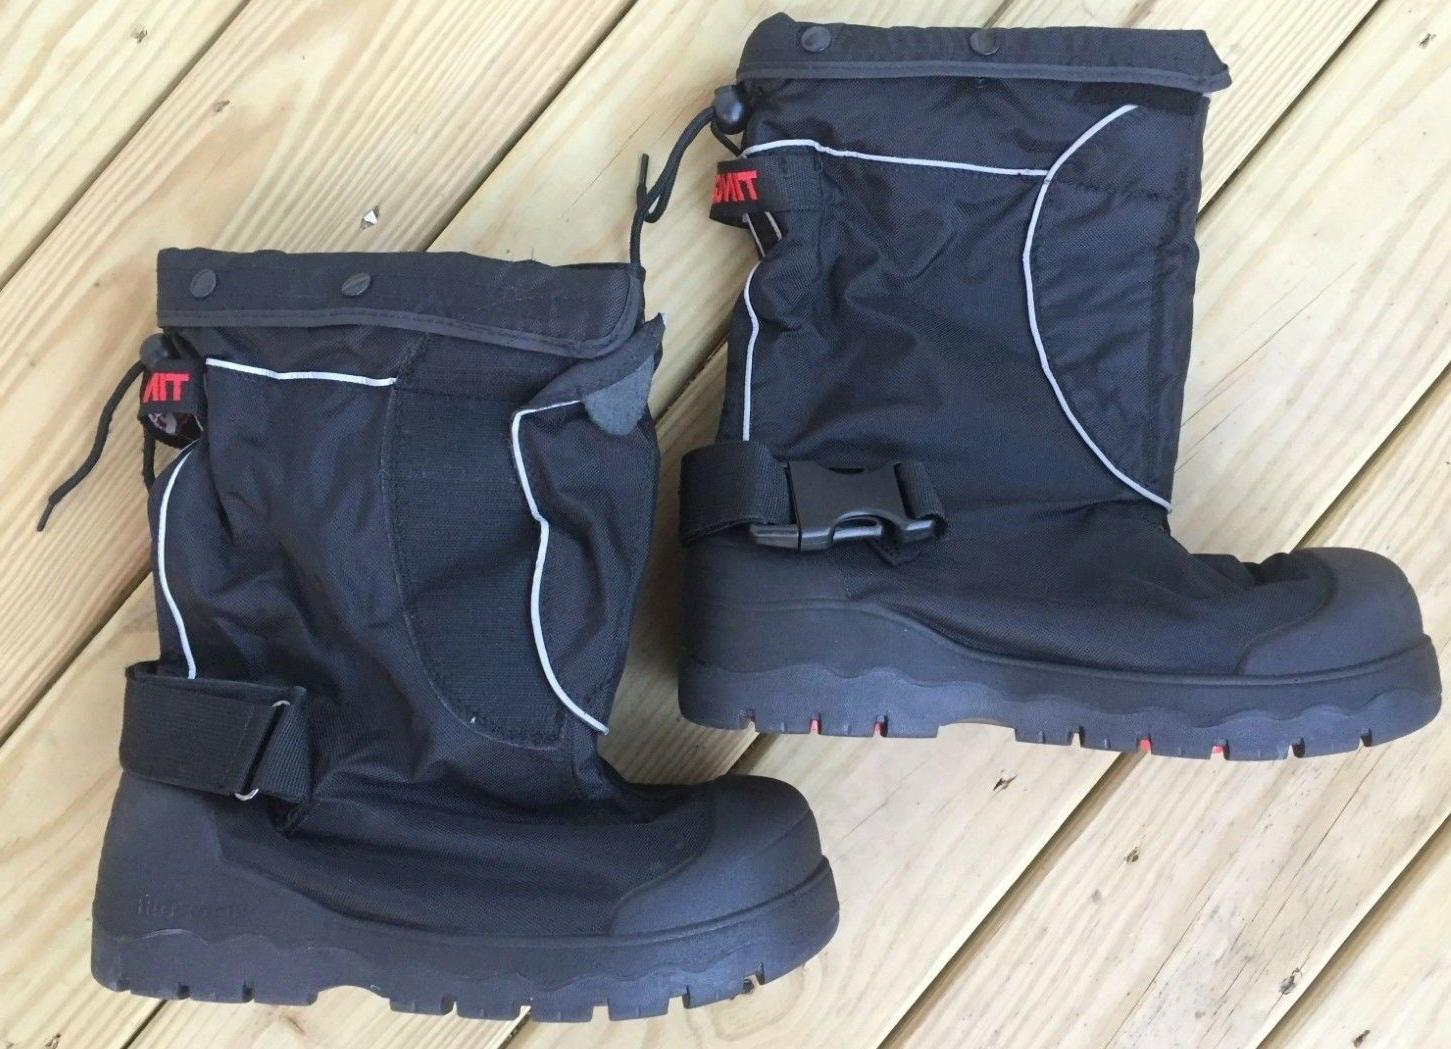 orion winter over boots insulated women 8